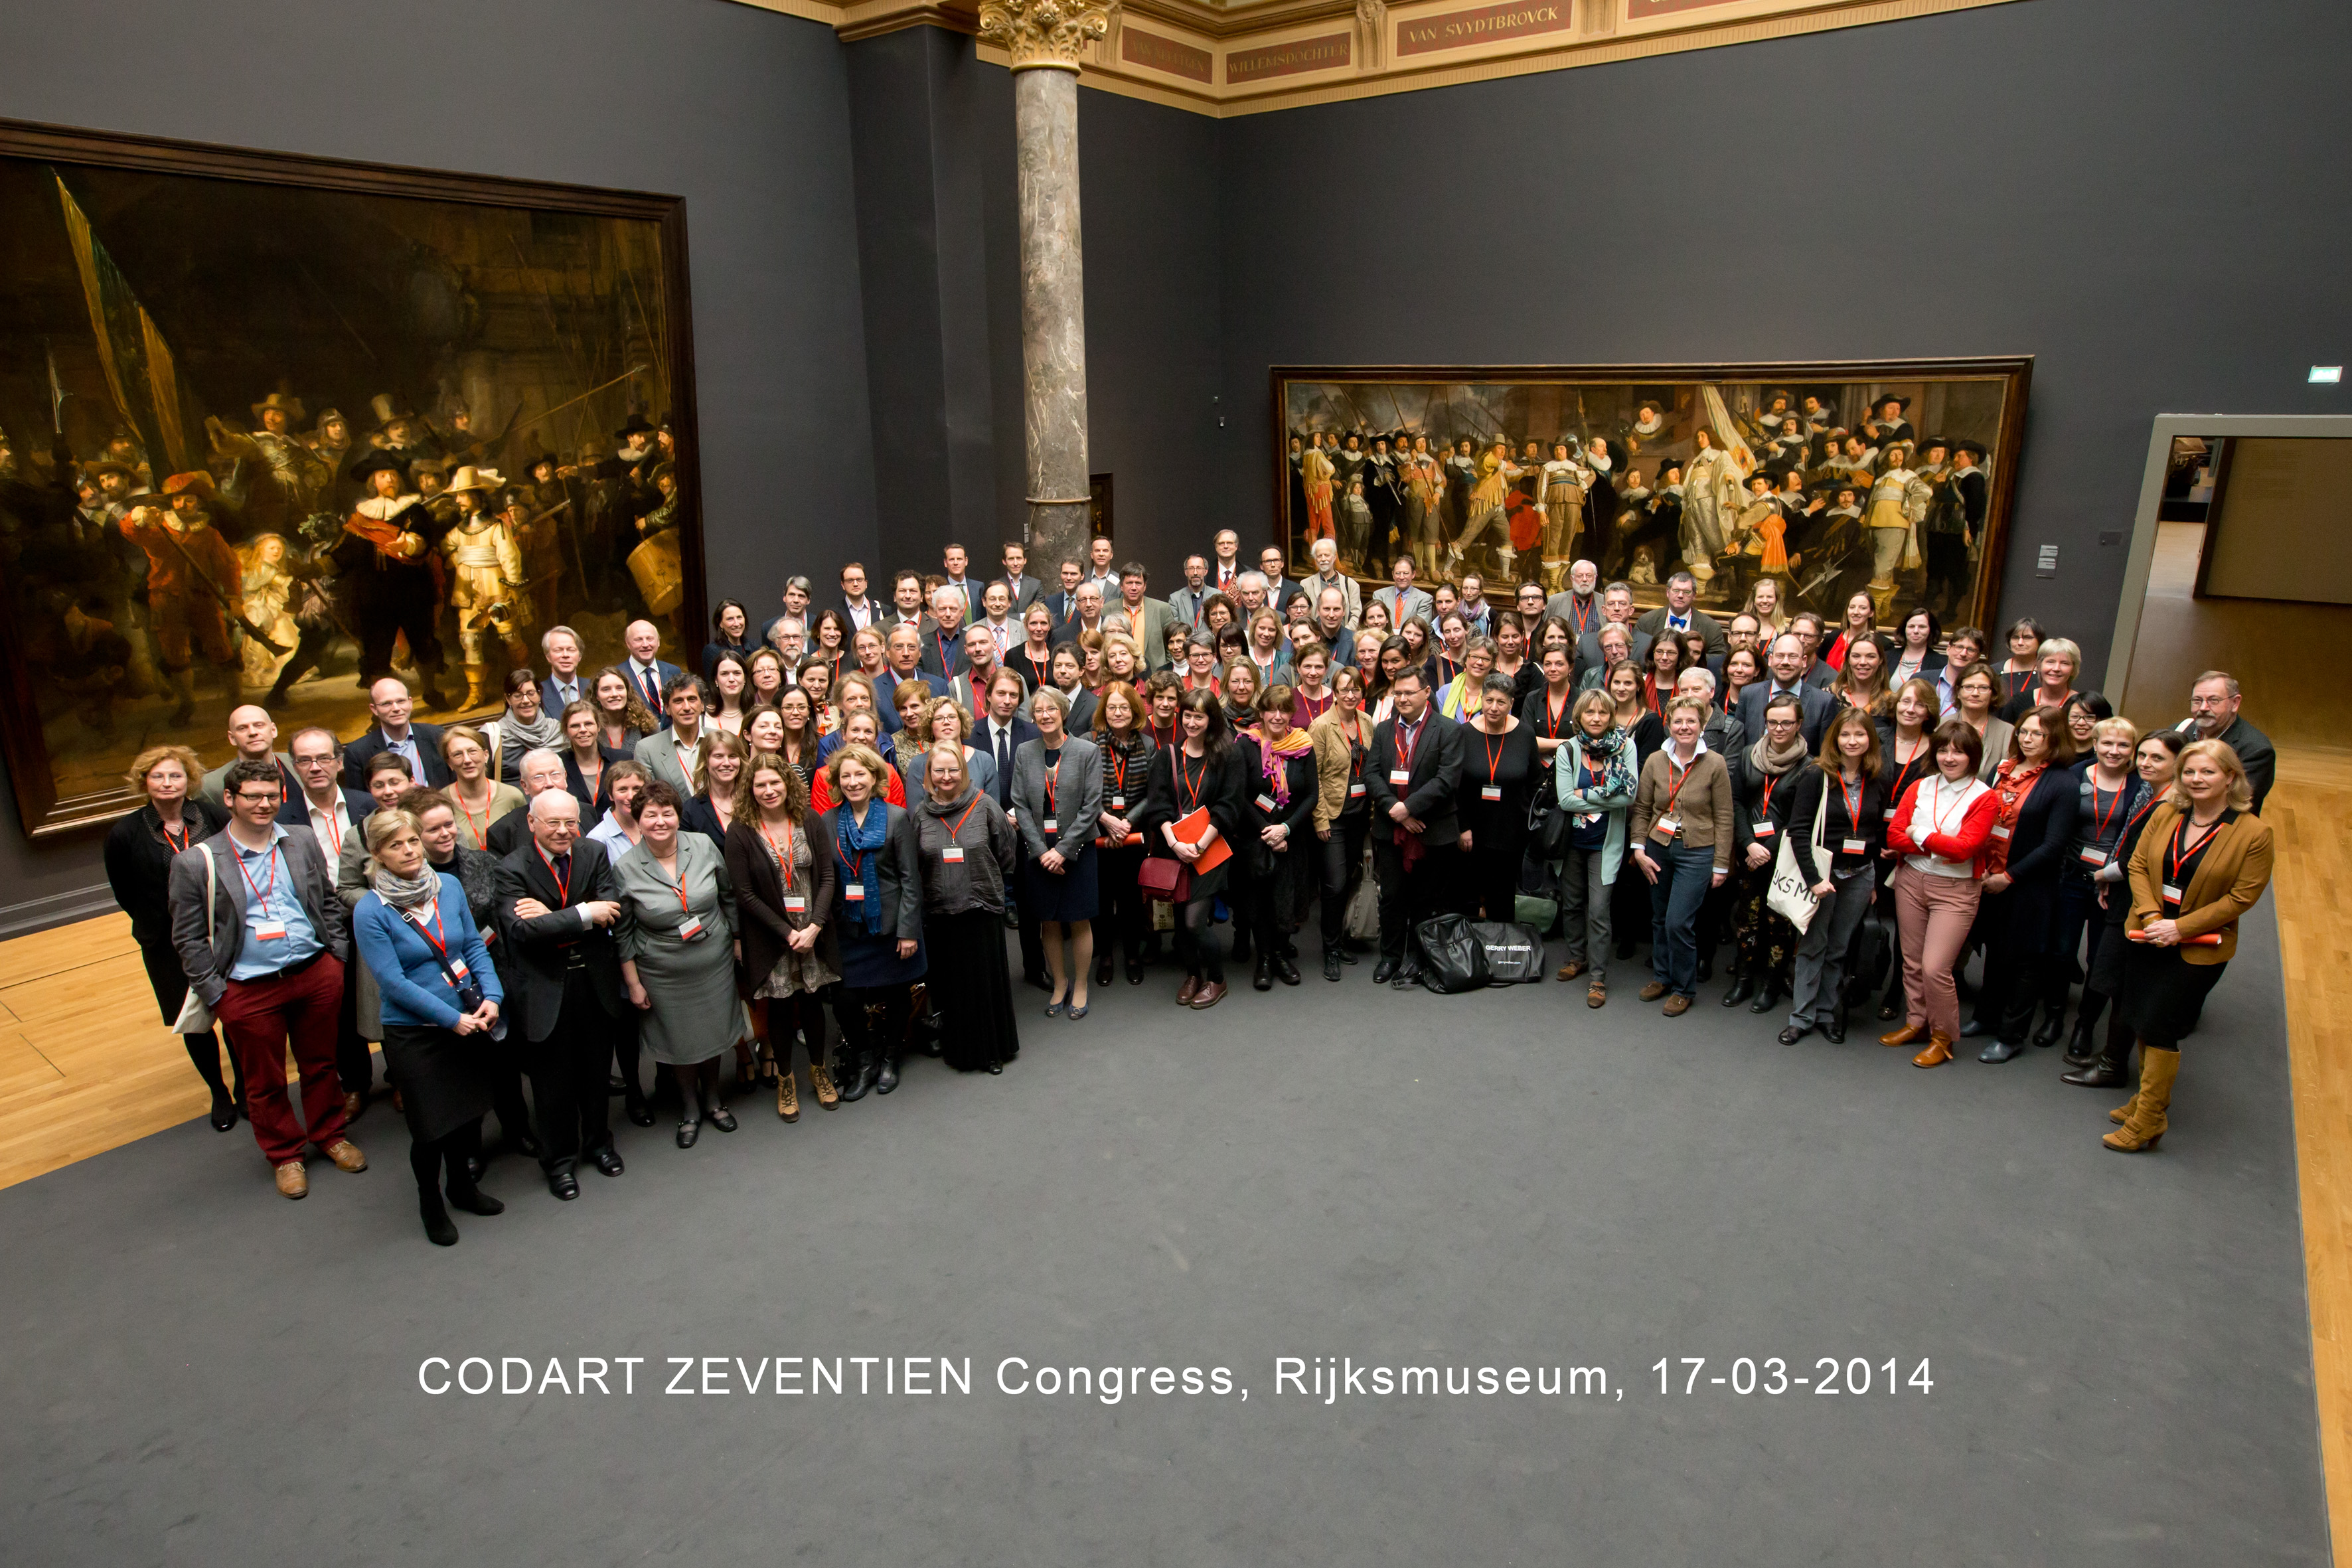 Participants CODART ZEVENTIEN congress in front of The Nightwatch. Photo by Paul Ridderhof